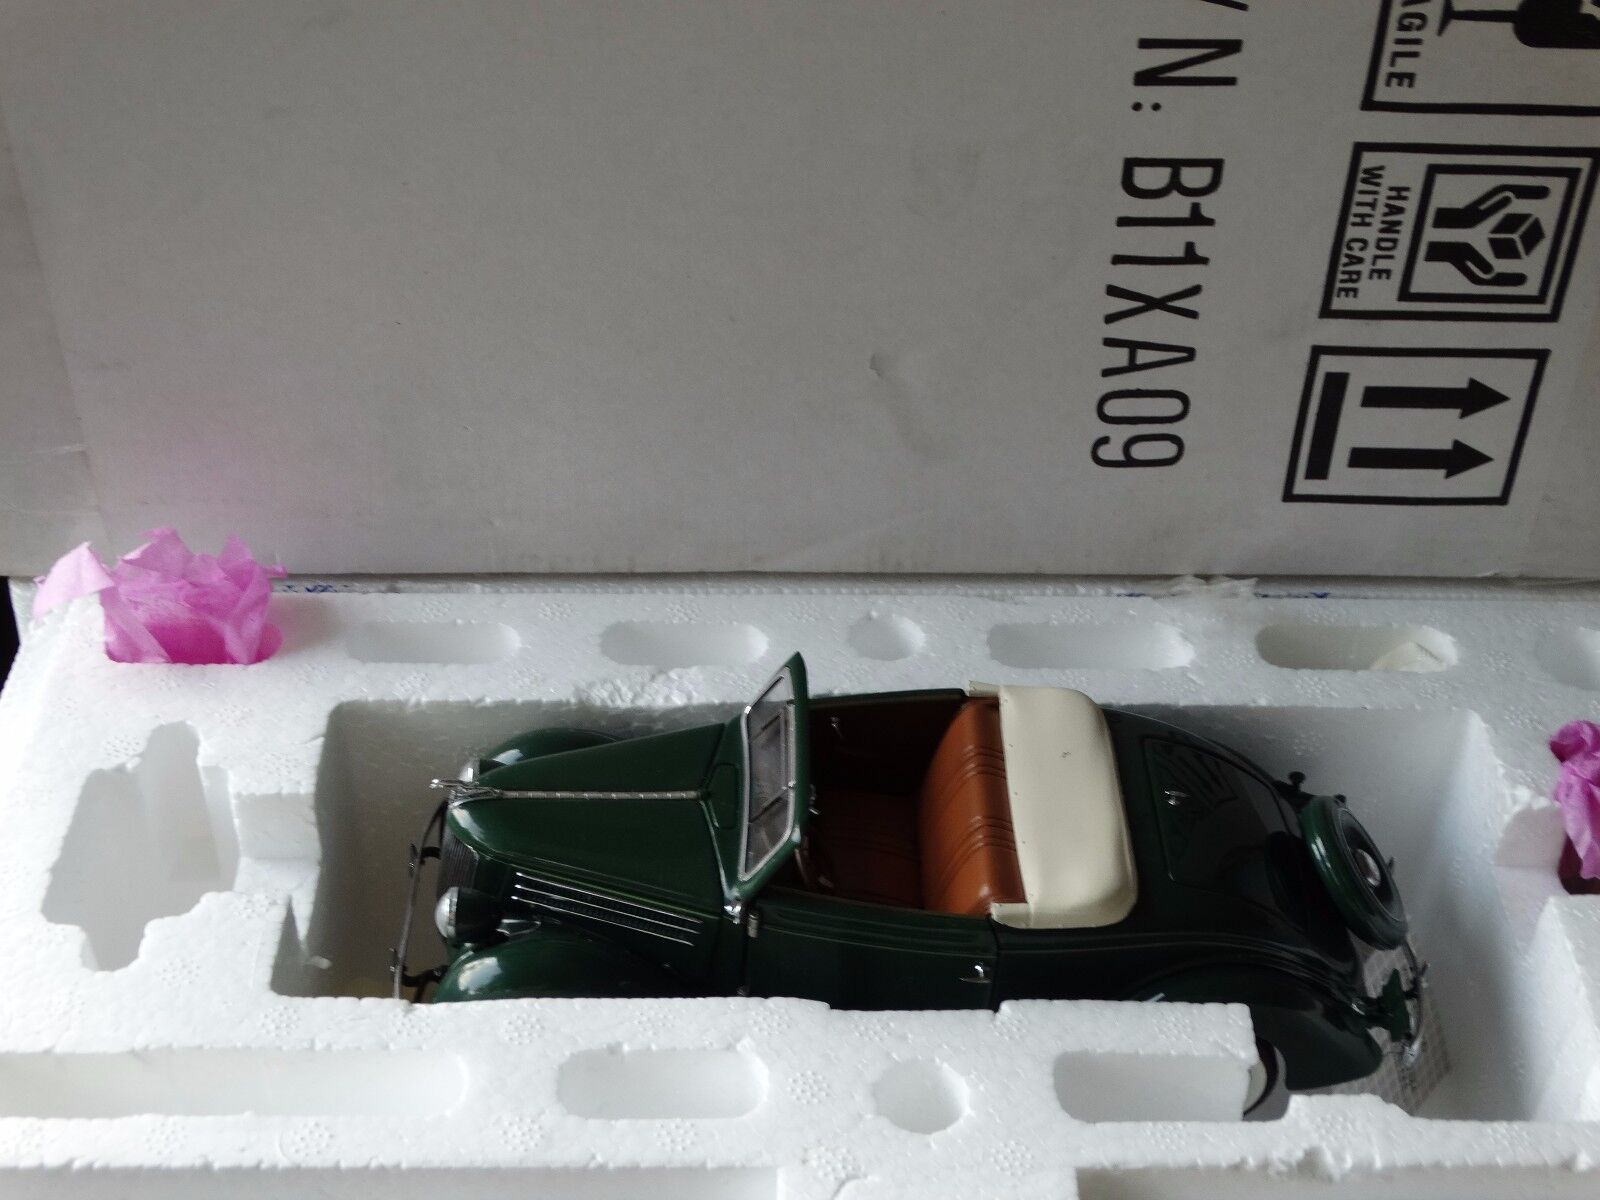 Franklin Mint 1936 Ford Deluxe Cabriolet V-8 1 1 1 24 Scale Diecast Green Model Car e27561